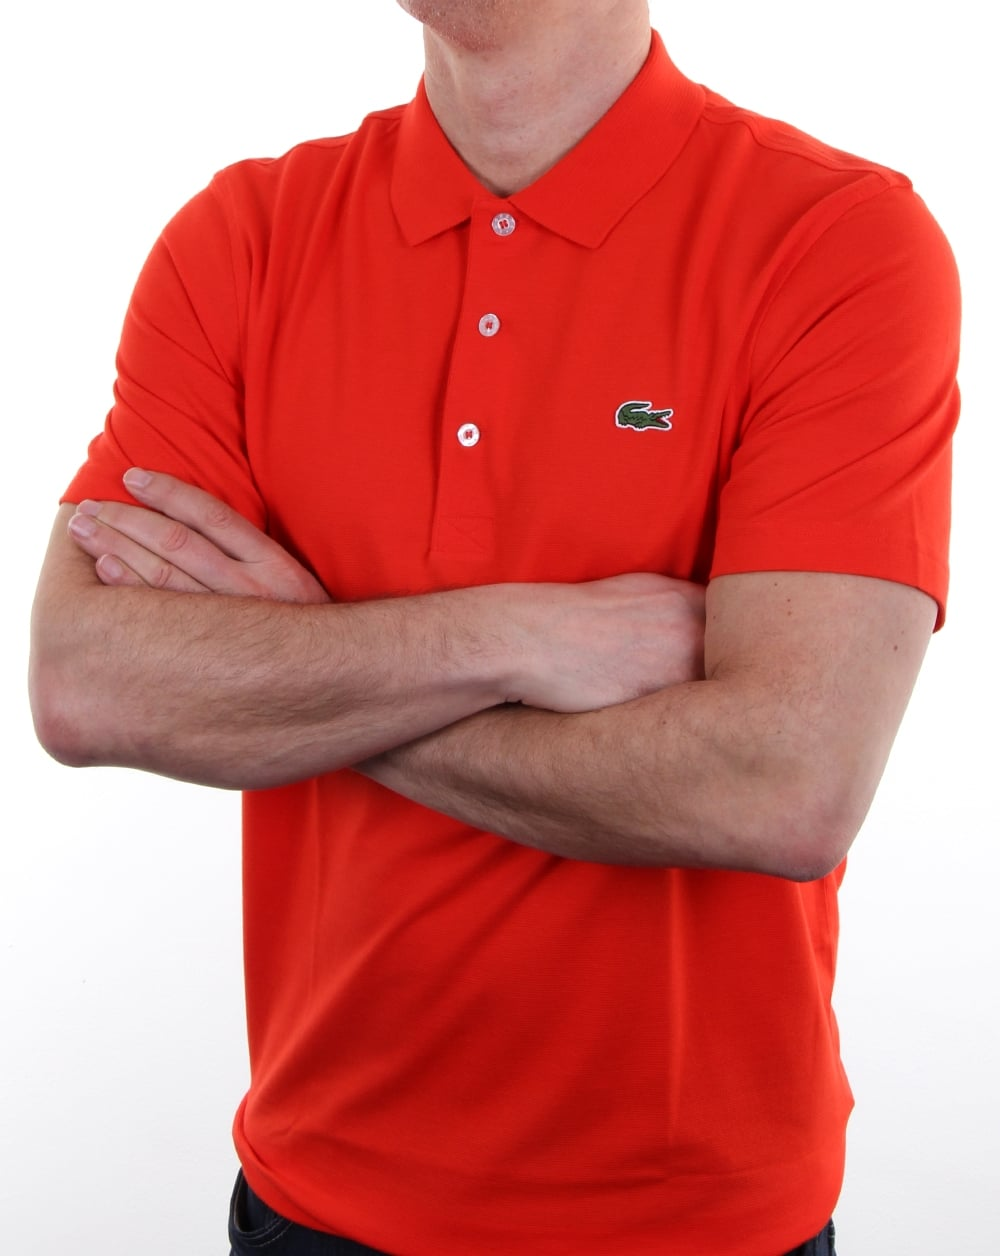 bc5e06afc9696 Lacoste Ultra-lightweight Knit Polo Shirt Etna Red